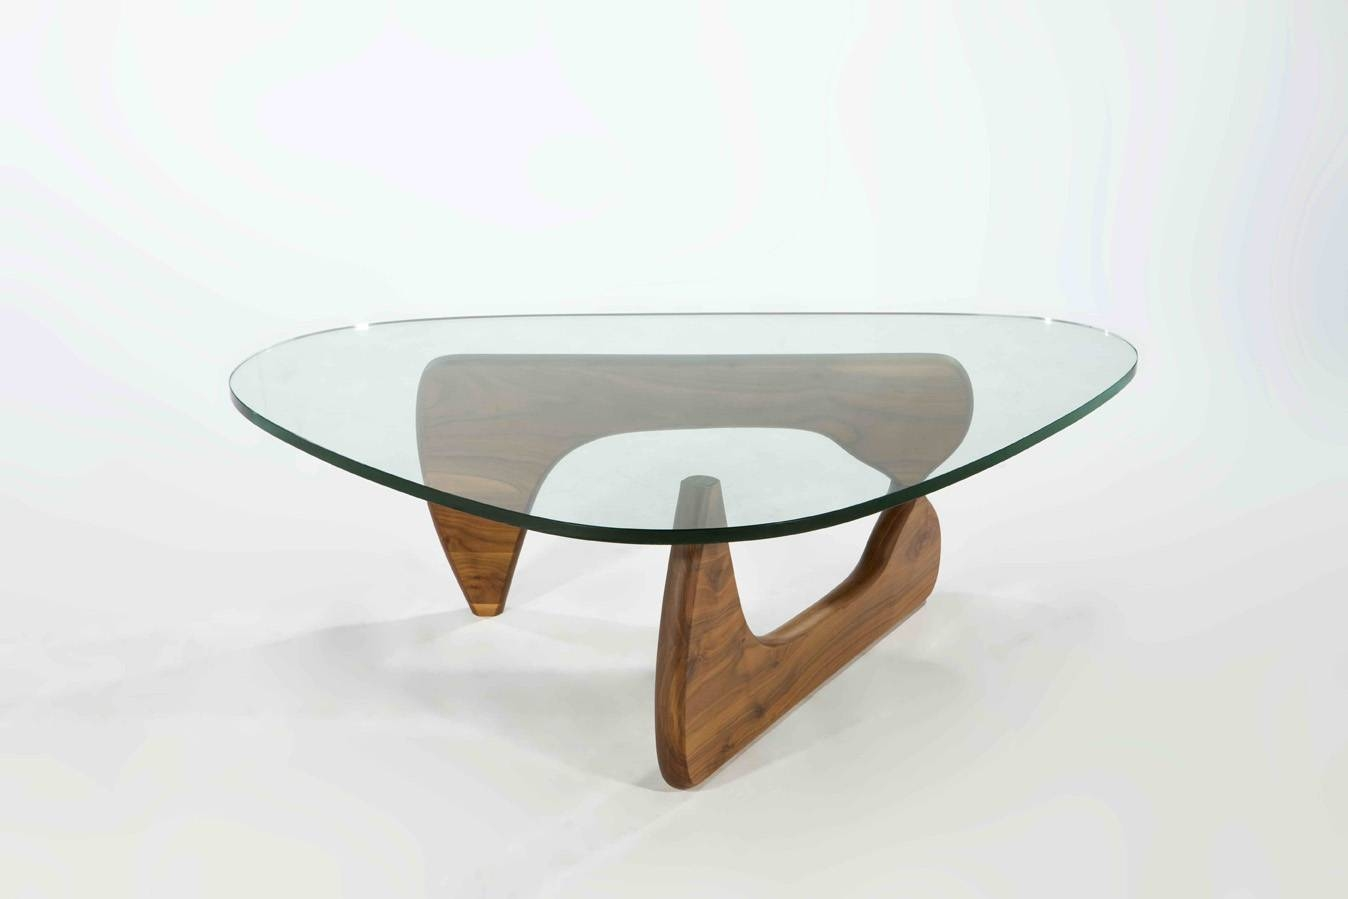 Contemporary Coffee Tables Slow : Contemporary Coffee Tables Throughout Contemporary Coffee Tables (View 7 of 15)